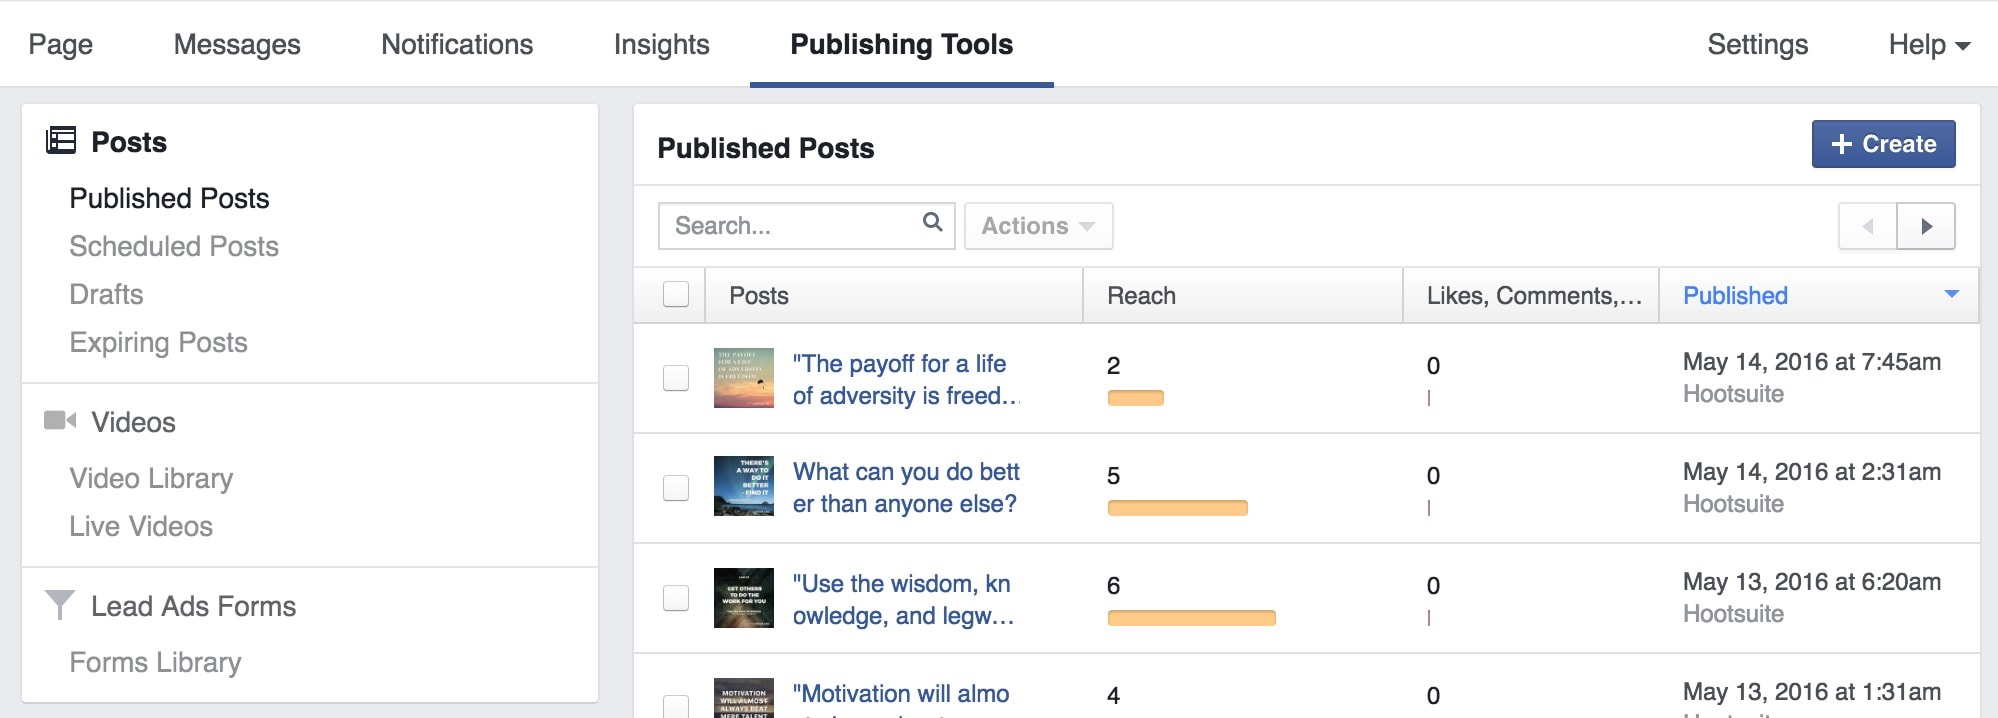 Publishing Tools